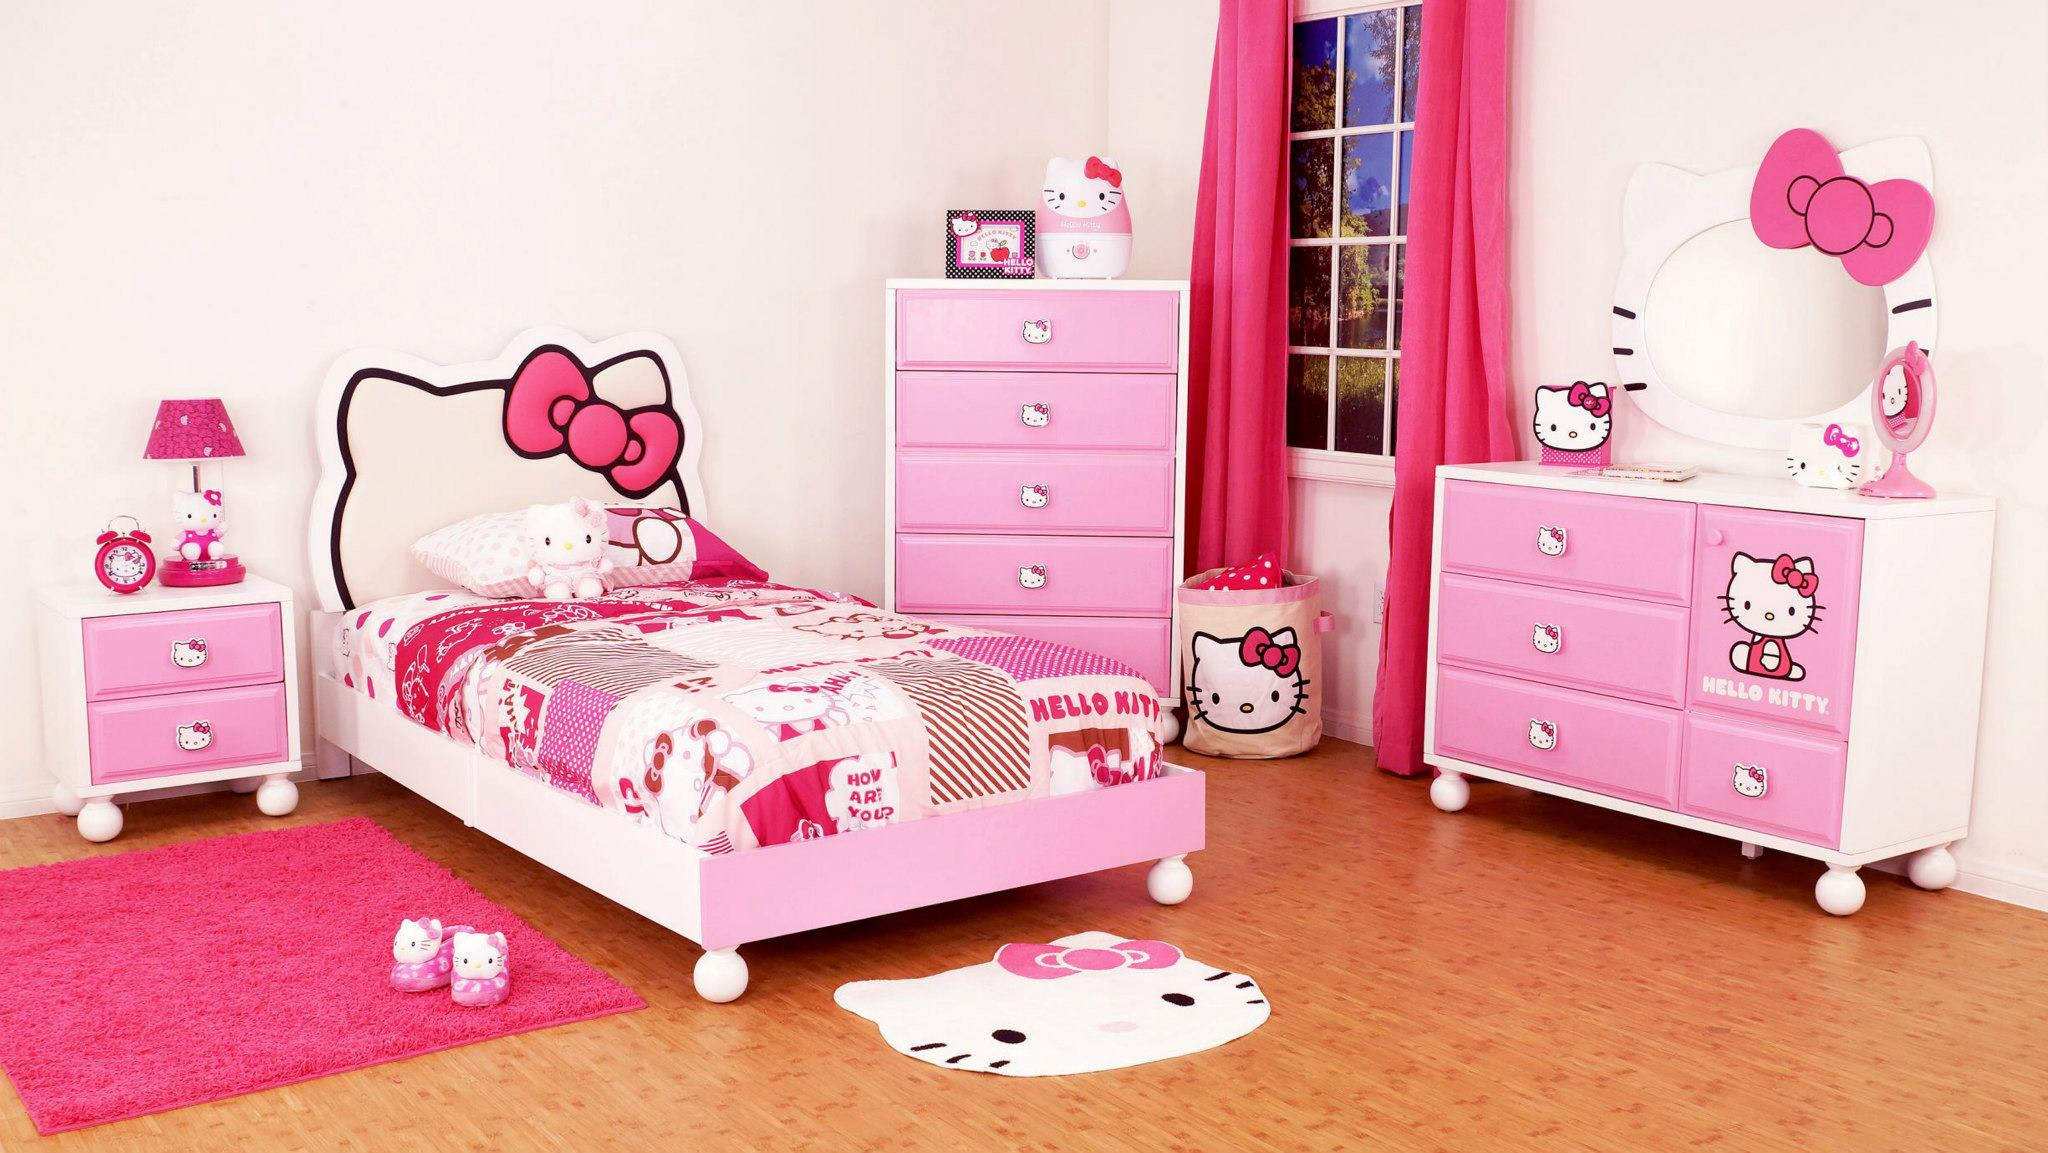 Hello Kitty Girls Room Designs (View 9 of 10)